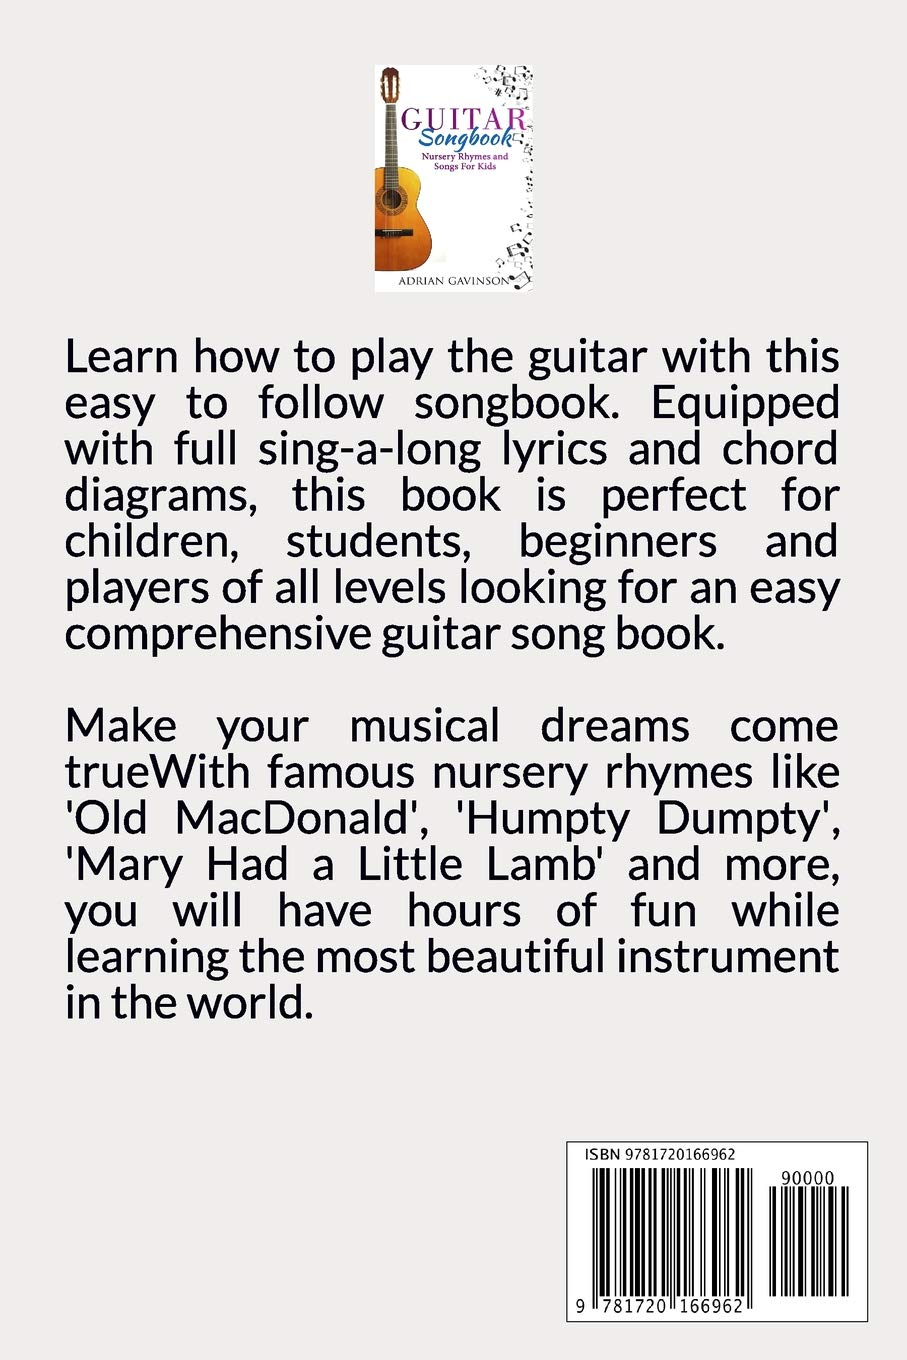 Amazon Com Guitar Songbook Nursery Rhymes And Songs For Kids